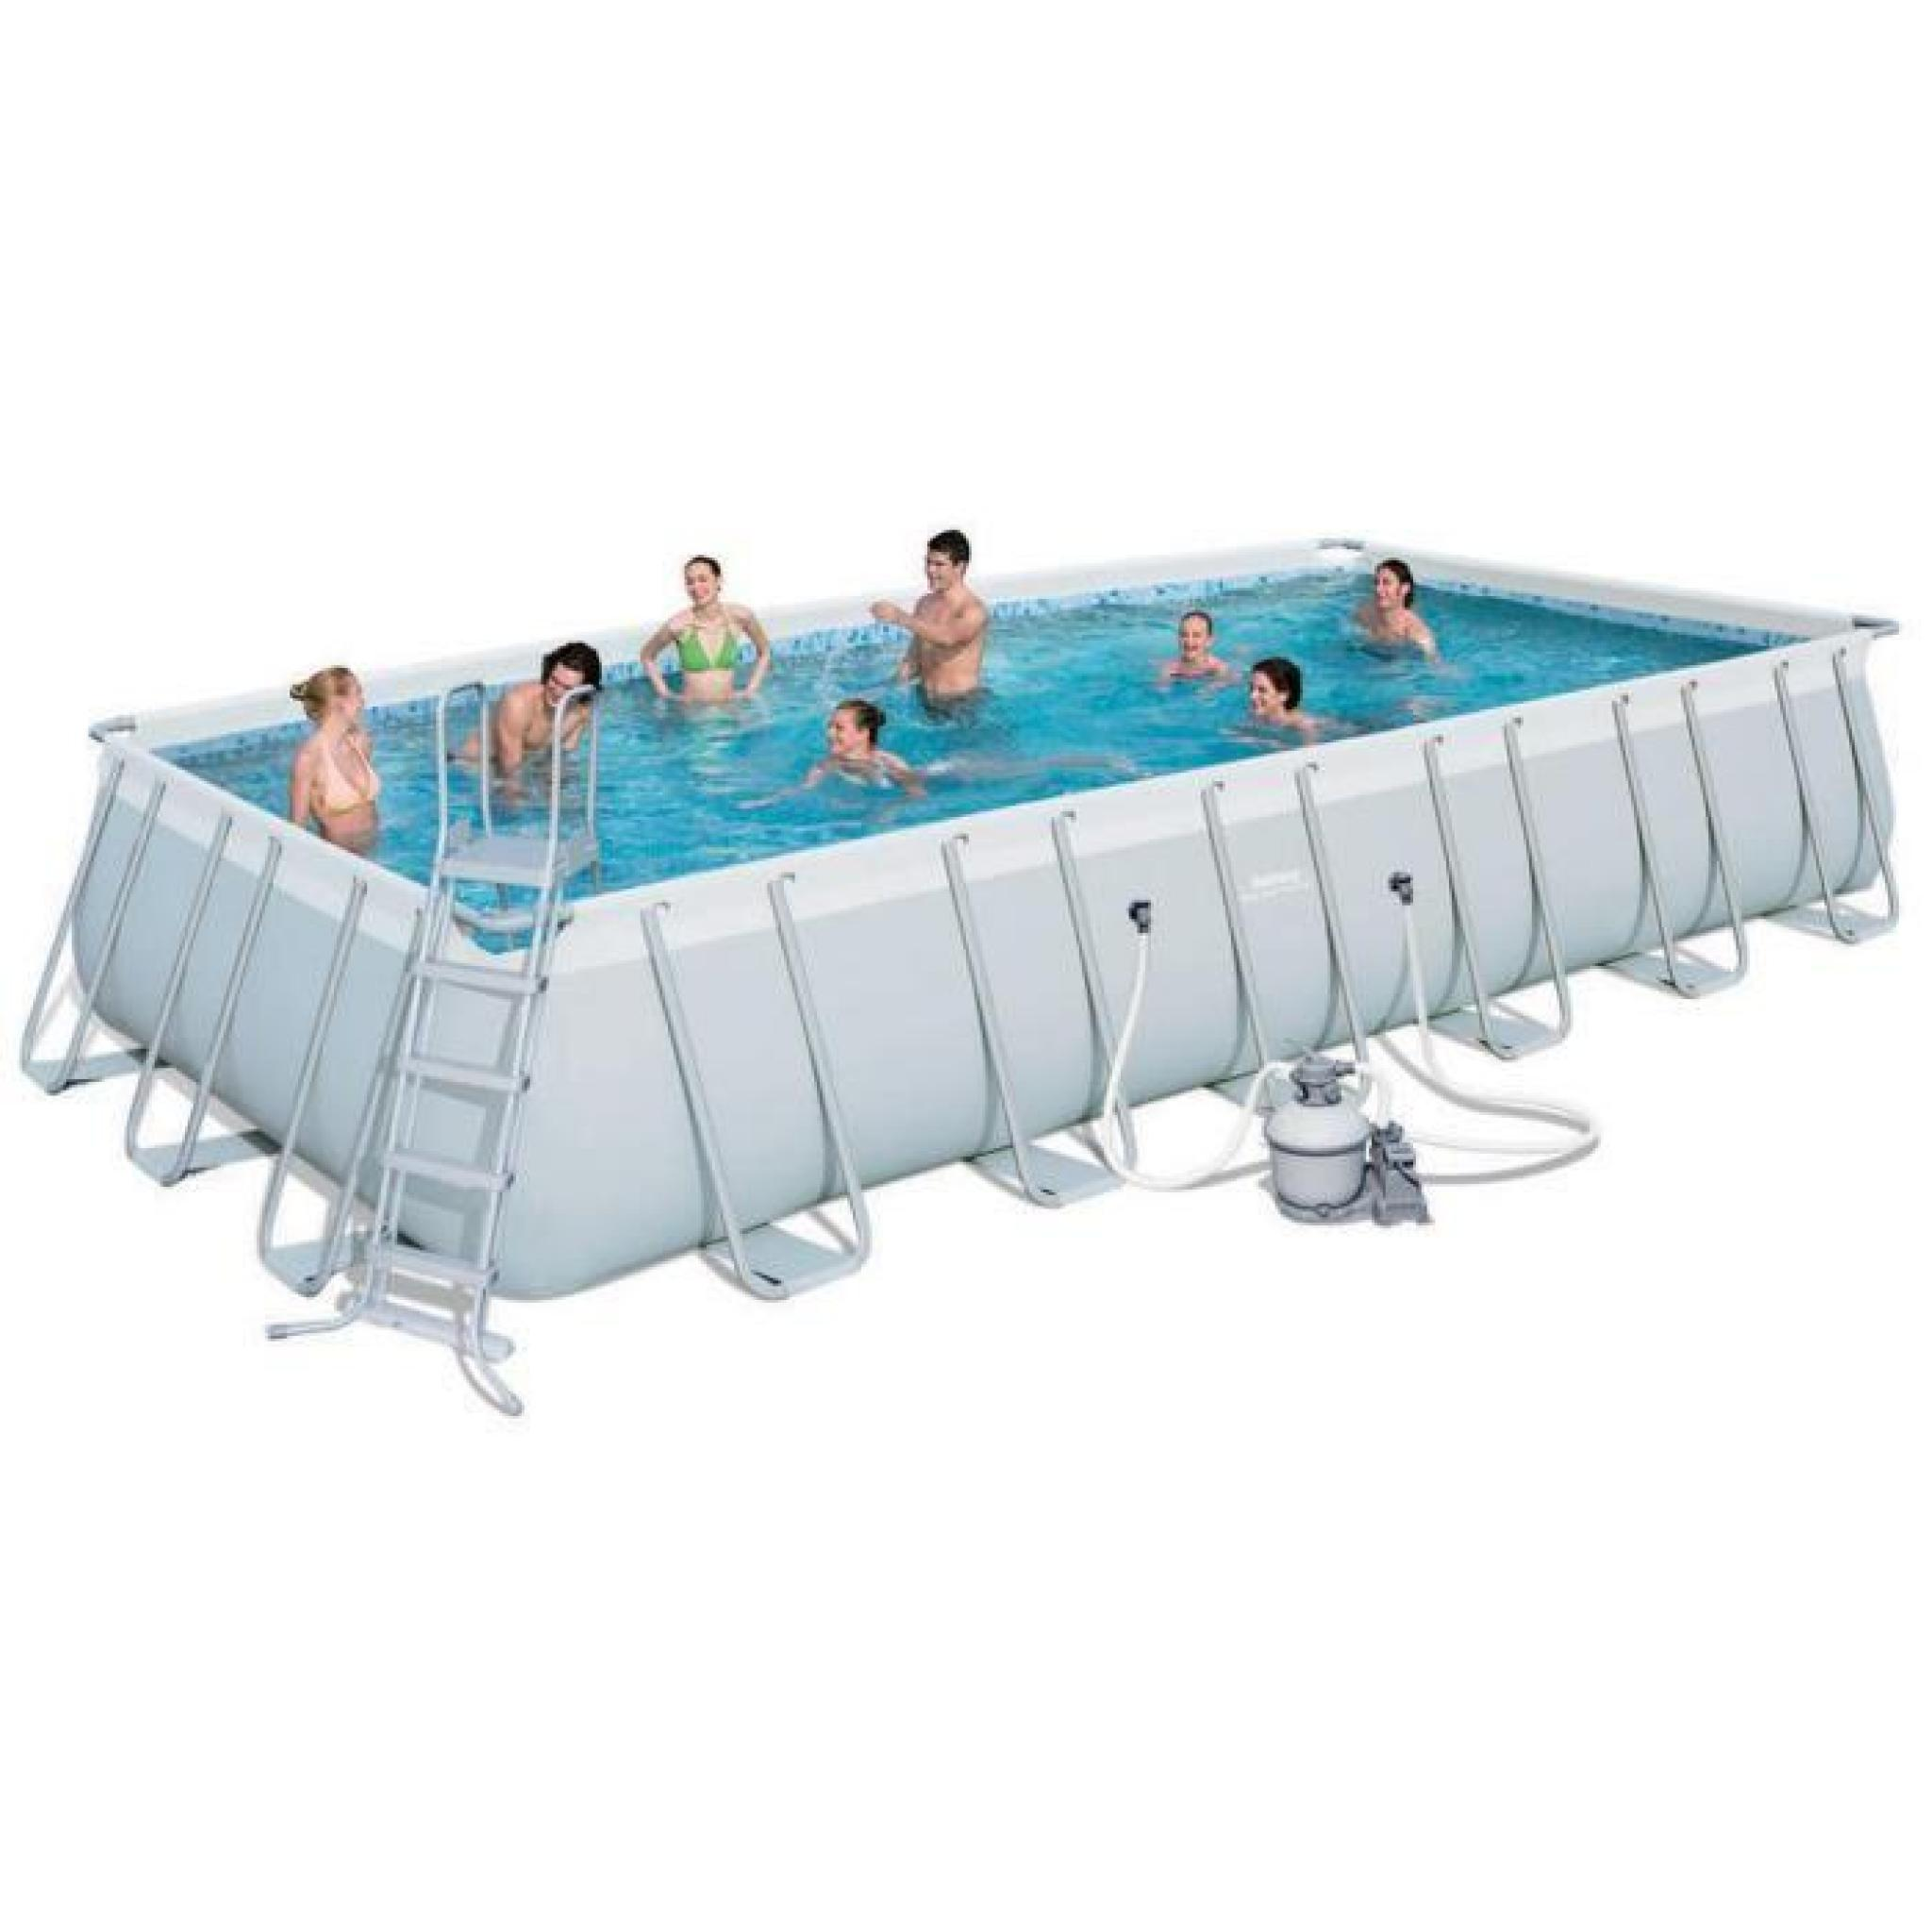 Piscine autoportante tubulaire power steel rectangl 4m12 - Produit piscine pas cher ...